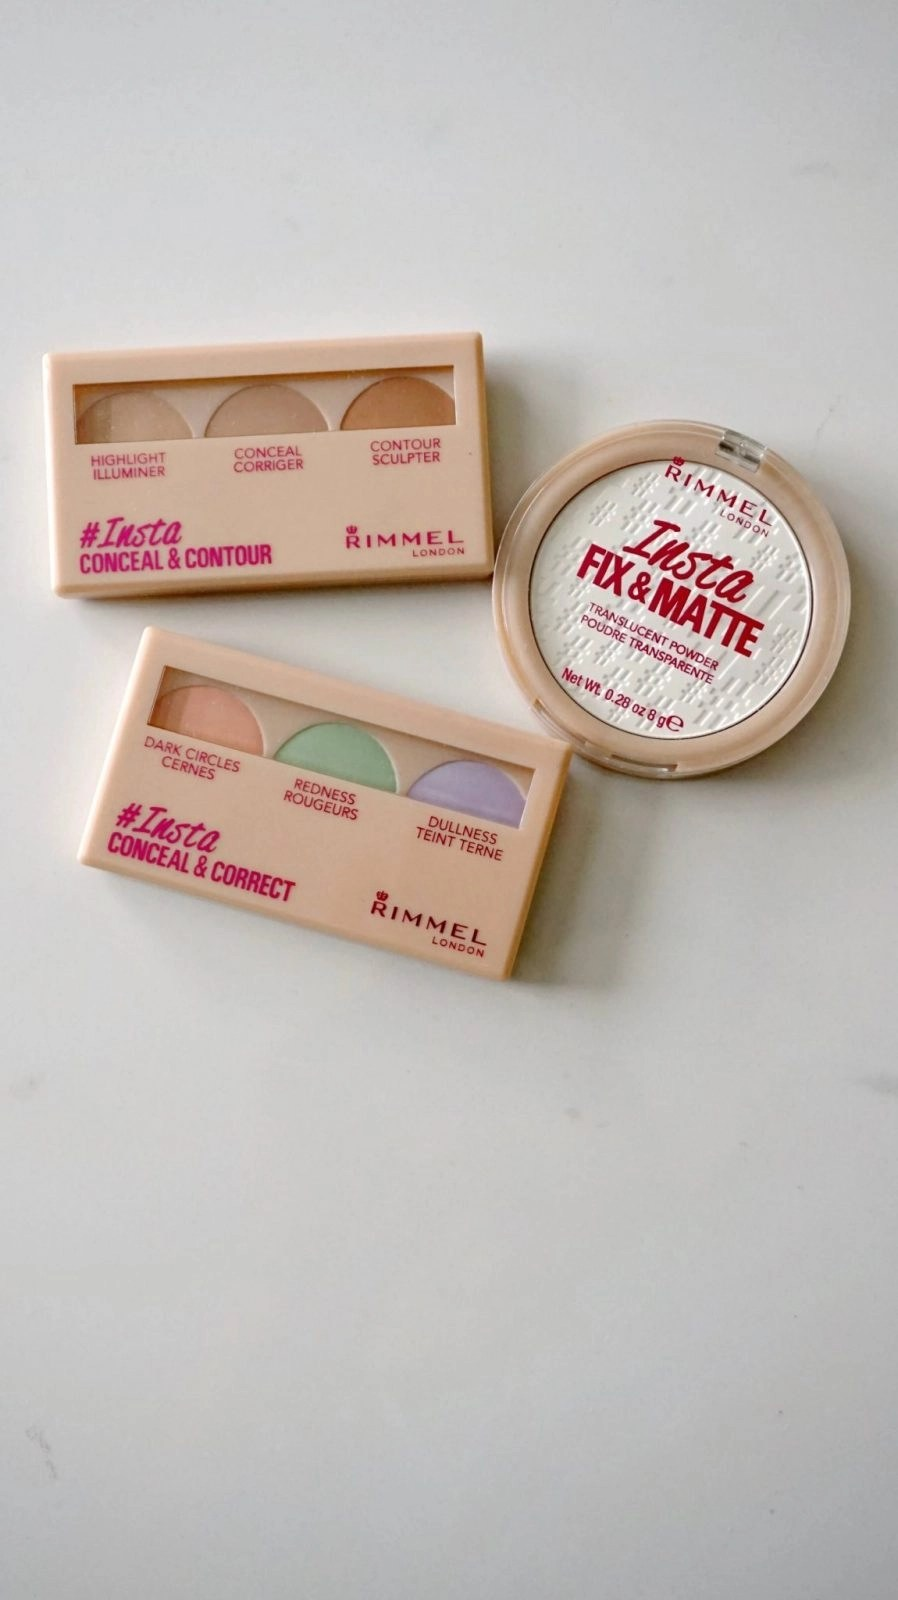 Rimmel Insta Collection main image